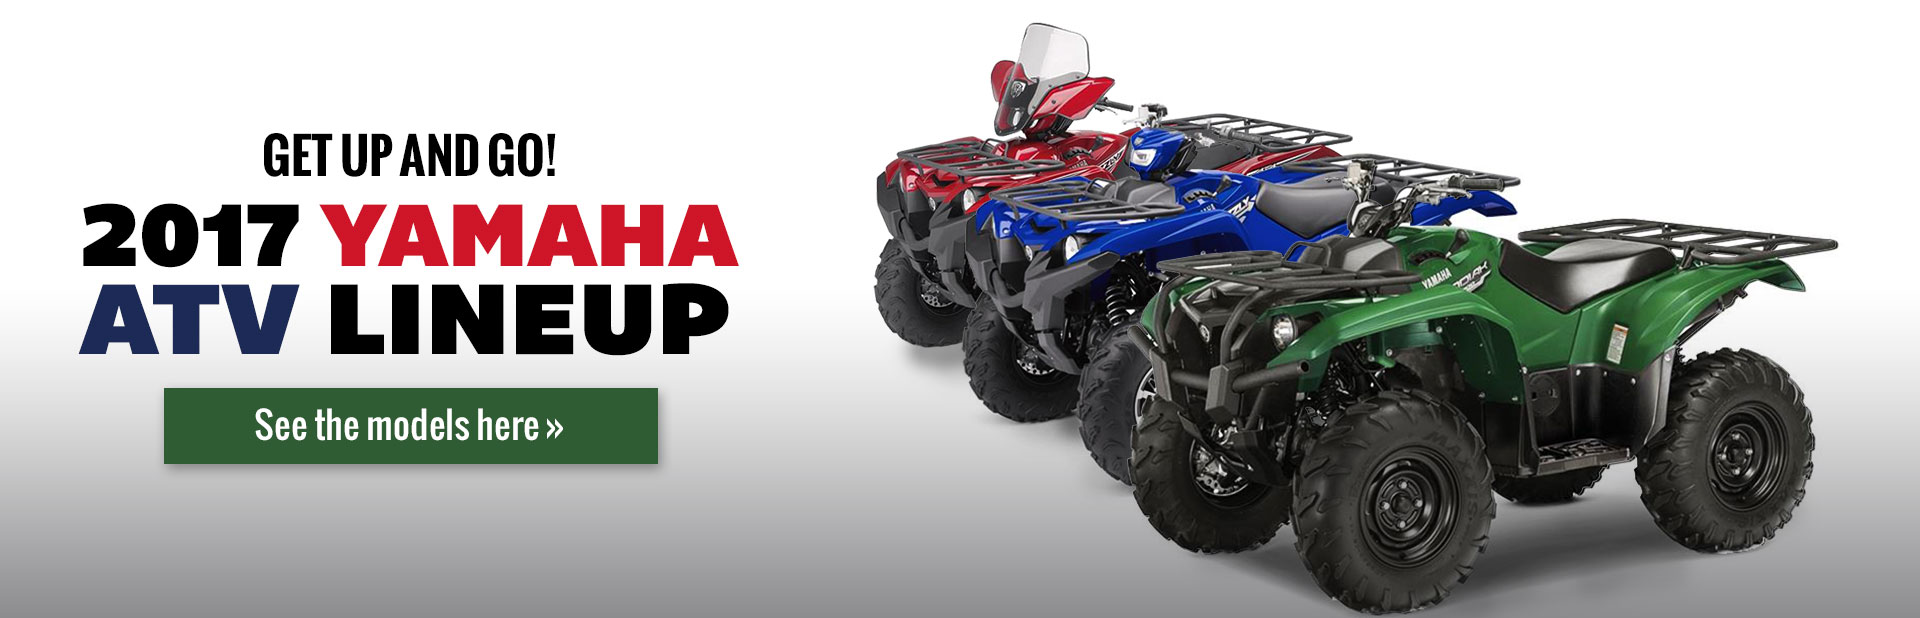 2017 Yamaha ATVs: Click here to view the lineup.